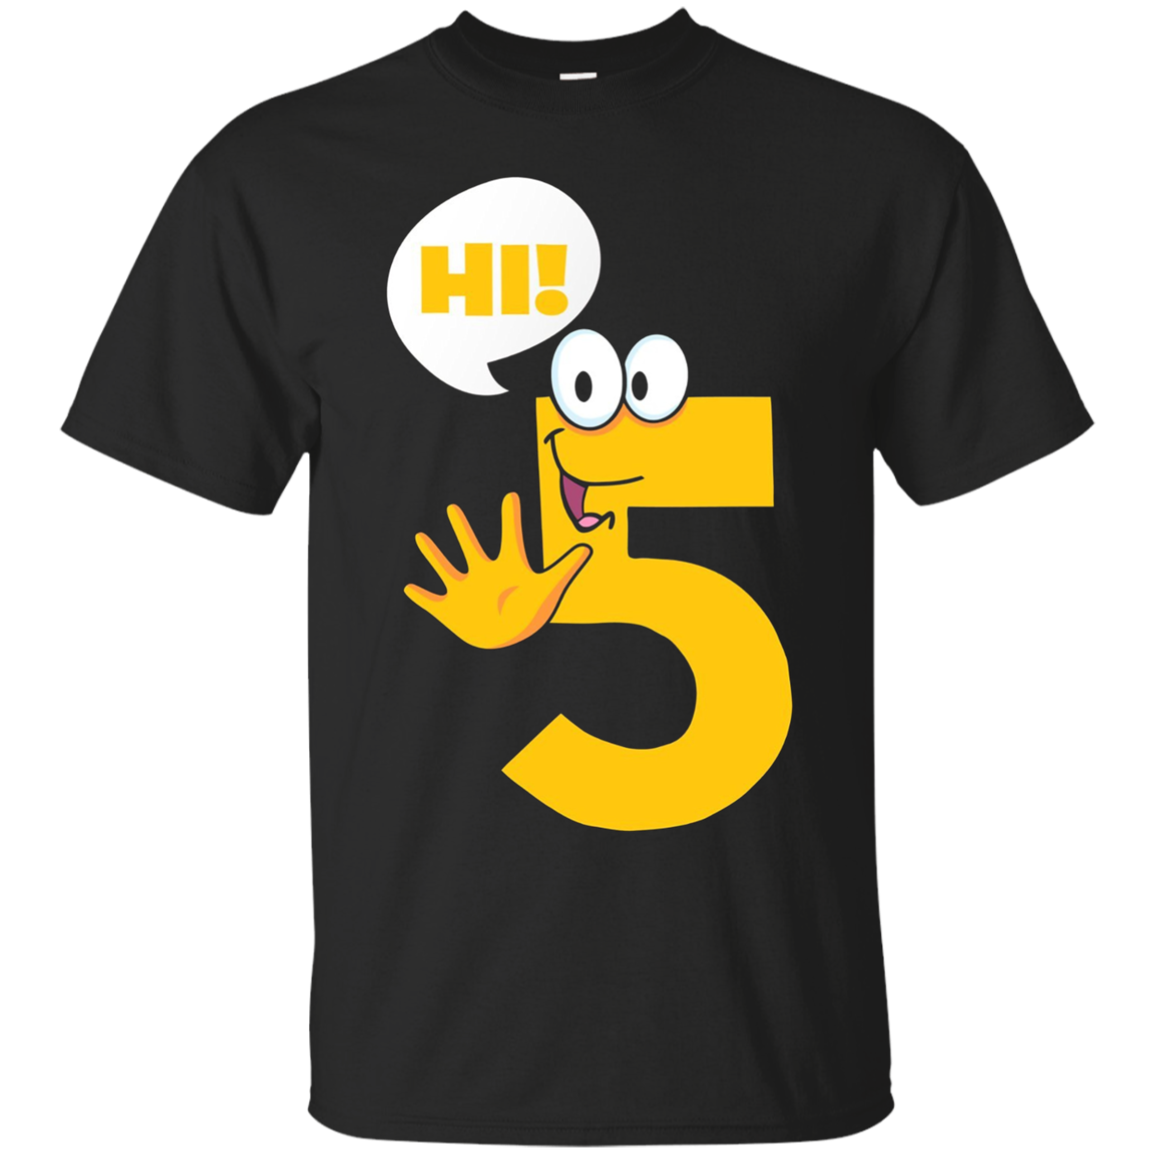 High Five T-Shirt - Funny Hi 5 Ice-Breaker Geek Wordplay Tee